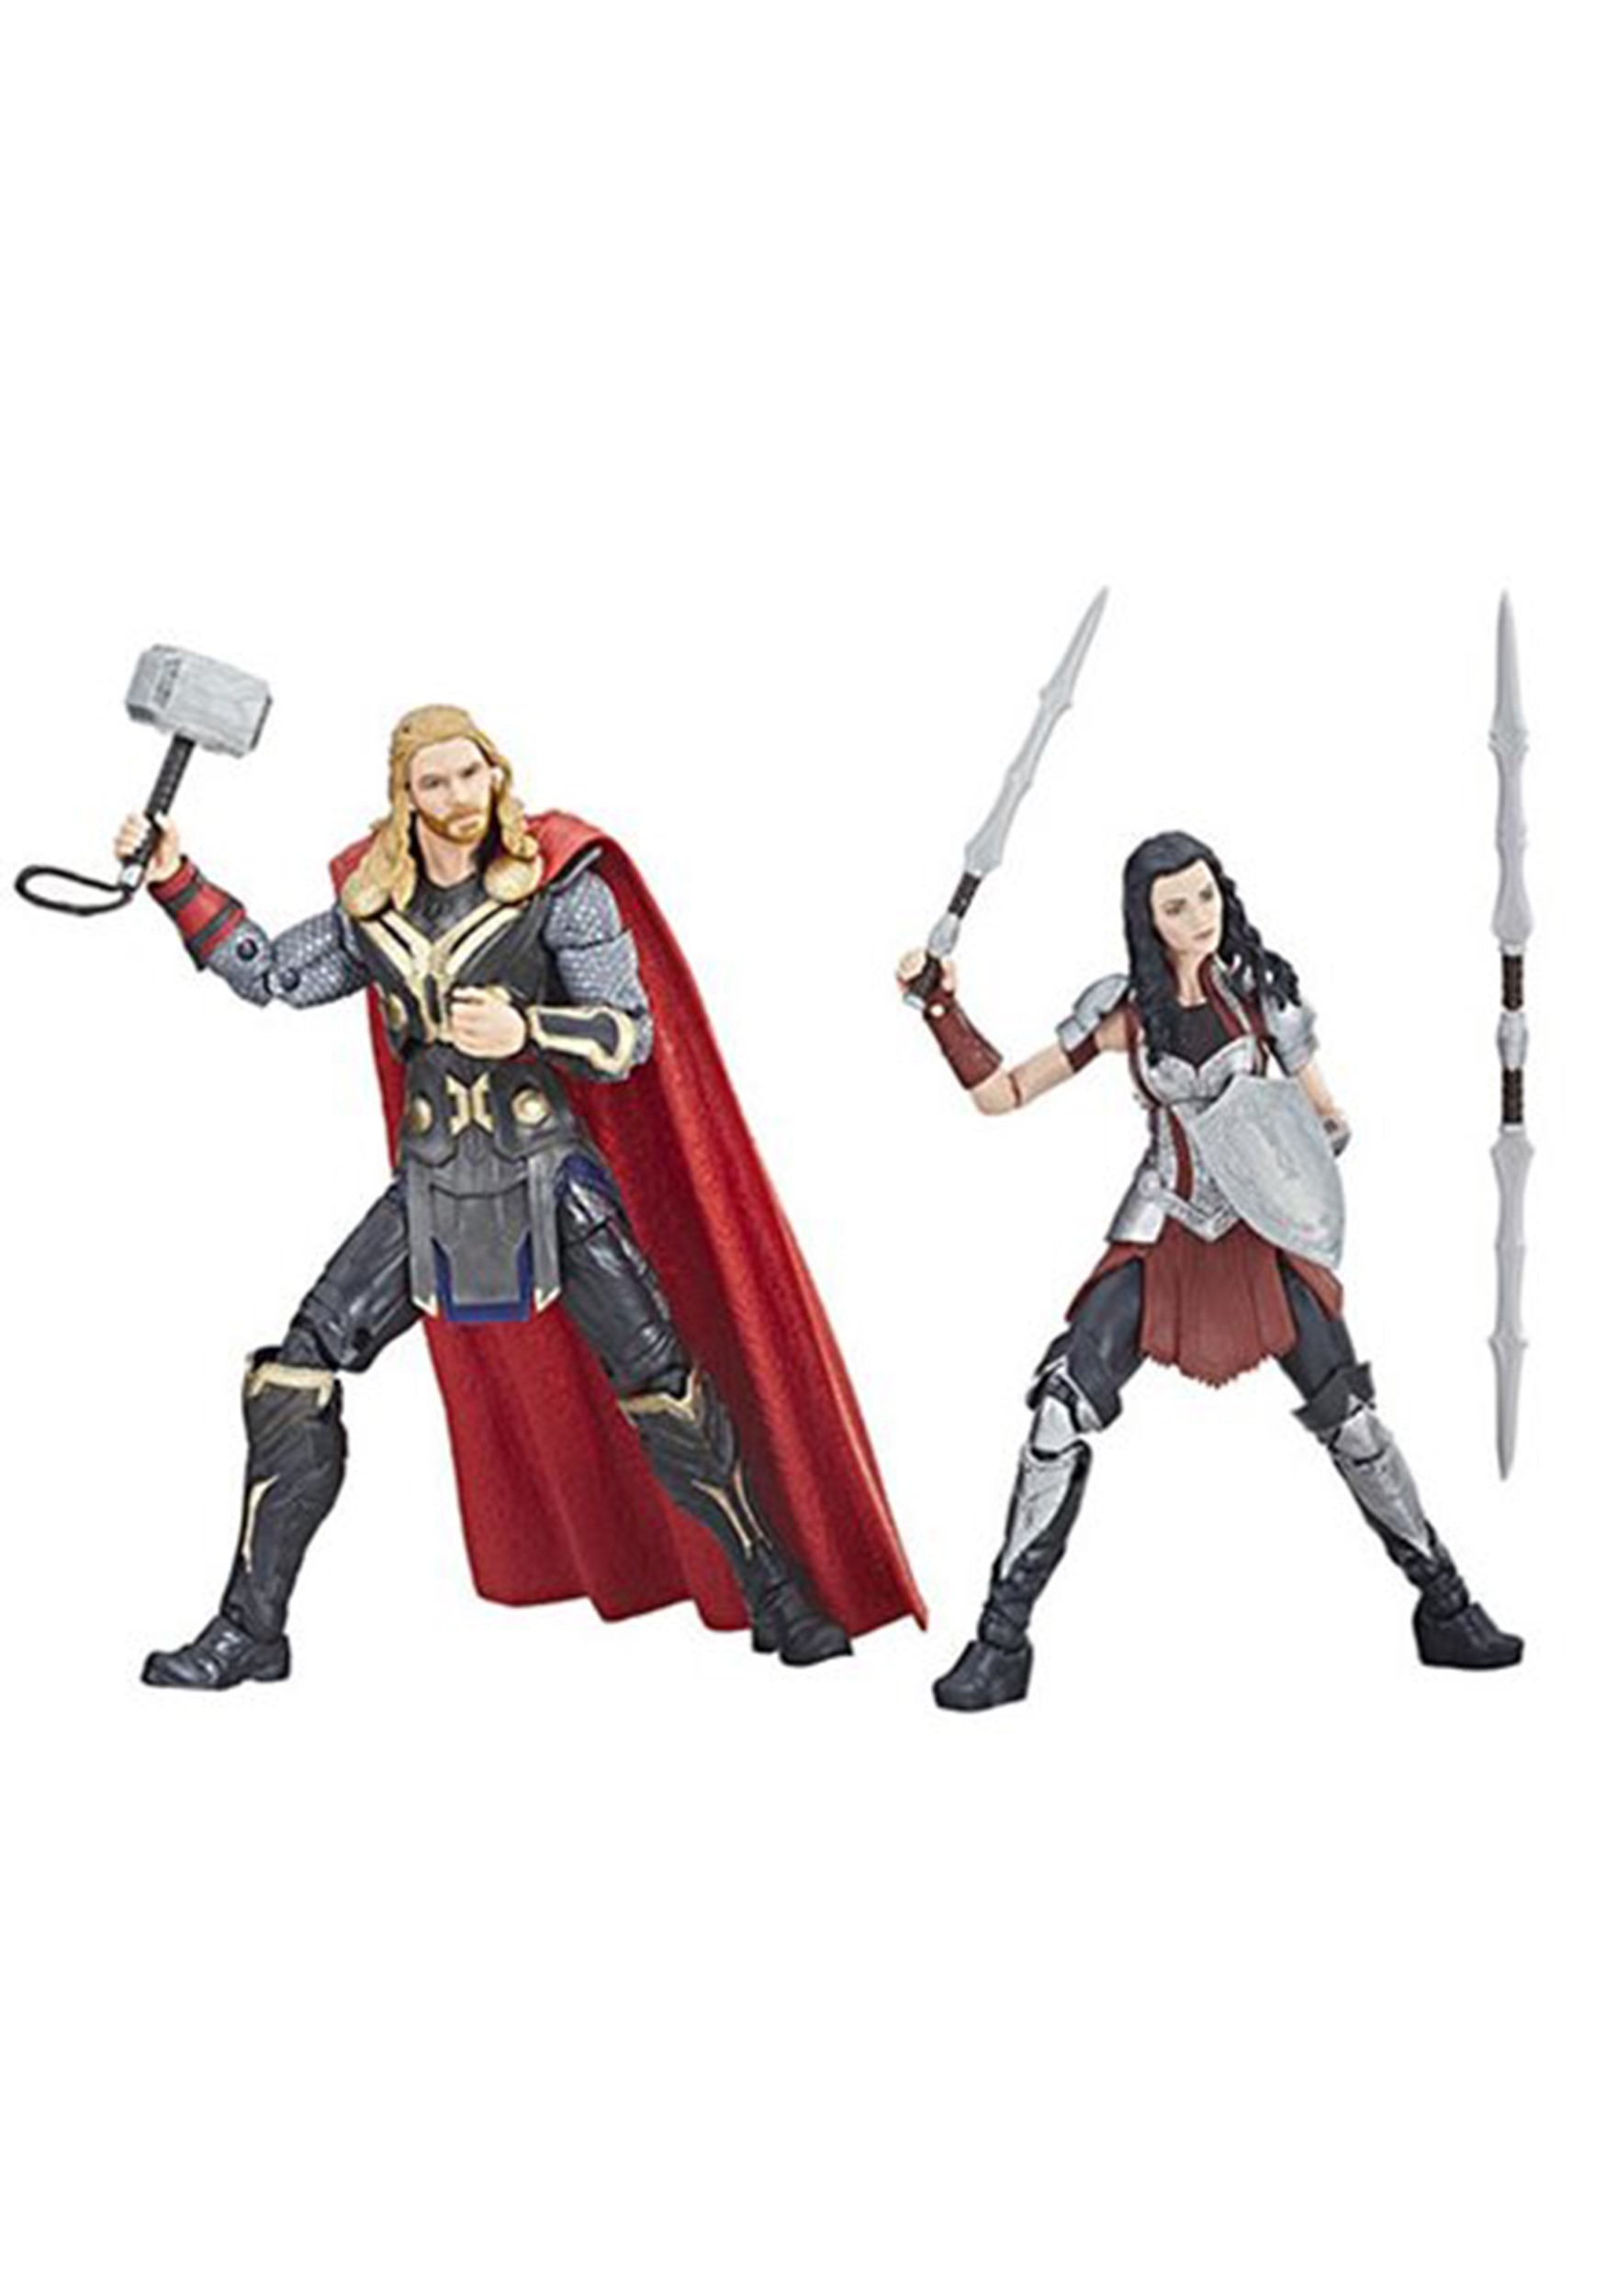 Marvel Studios: The First Ten Years - Thor: The Dark World Thor and Sif Action Figures